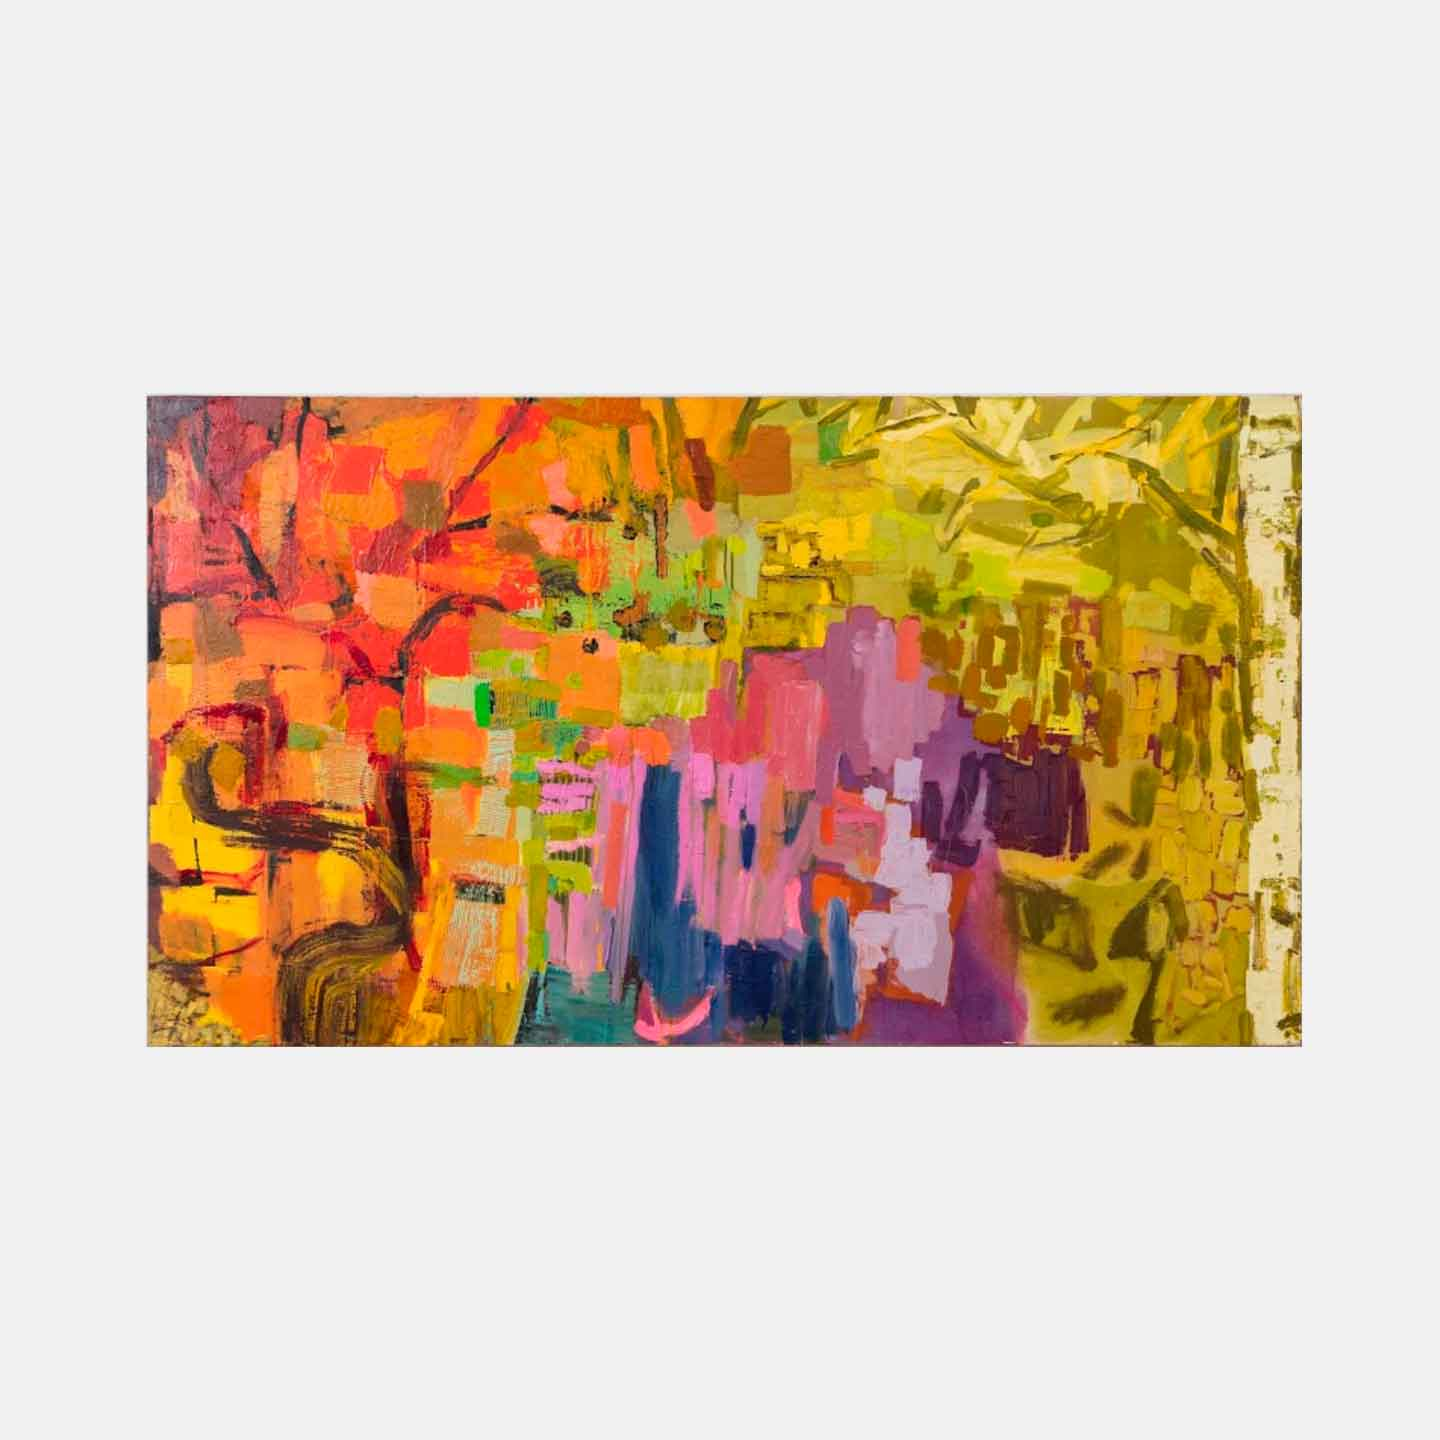 contemporary art, colorful art, contemporary, nature art work, tree art, line painting, moody painting, natural art, art, colorful art, geometric rainbow art, modern art, colorful abstract art, rent art, modern oil painting, warm cool color tones, bright pantone, fun art for office, colorful contemporary painting, yellow red blue painting, vibrant contrasting art, vibrant color palette, abstract colorful, art work for home, painting for apartment, hand painted artwork, unique home painting, geometric rainbow art, modern art, colorful abstract art, rent art, modern oil painting, warm color tones, bright pantone, fun art for office, colorful contemporary painting, yellow red blue painting, vibrant contrasting art, vibrant color palette, abstract colorful, art work for home, painting for apartment, hand painted artwork, unique home painting, black and white art, black white yellow art, oil canvas painting, modern art inspiration, sculpture for home, colorful wall art